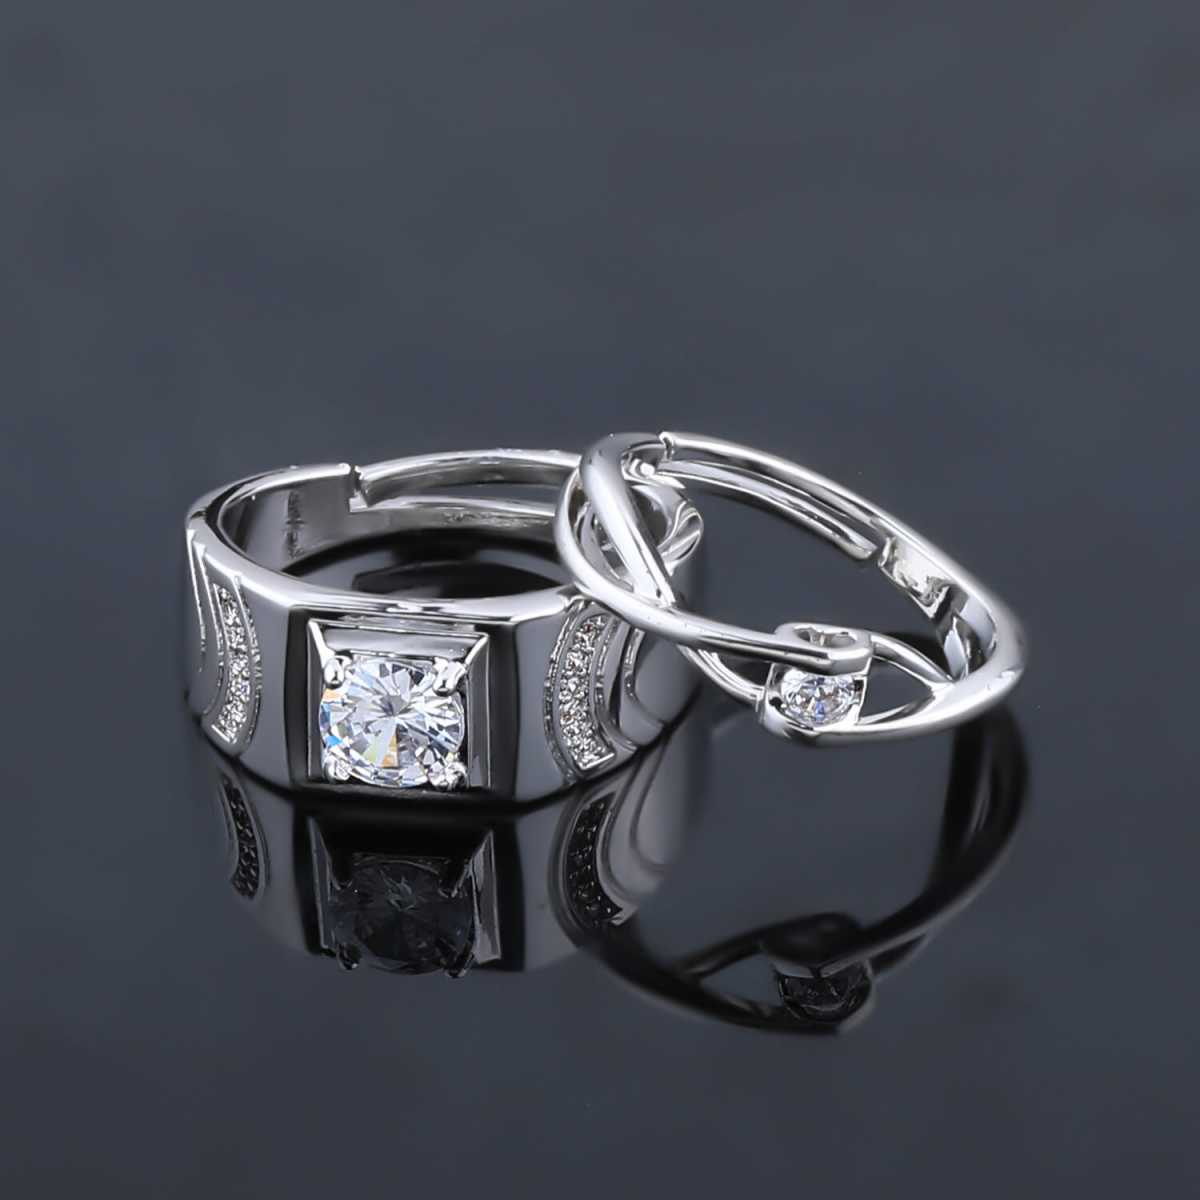 SILVERSHINE,silver plated simple single lovely crystal diamond adjustable couple ring for men and women.